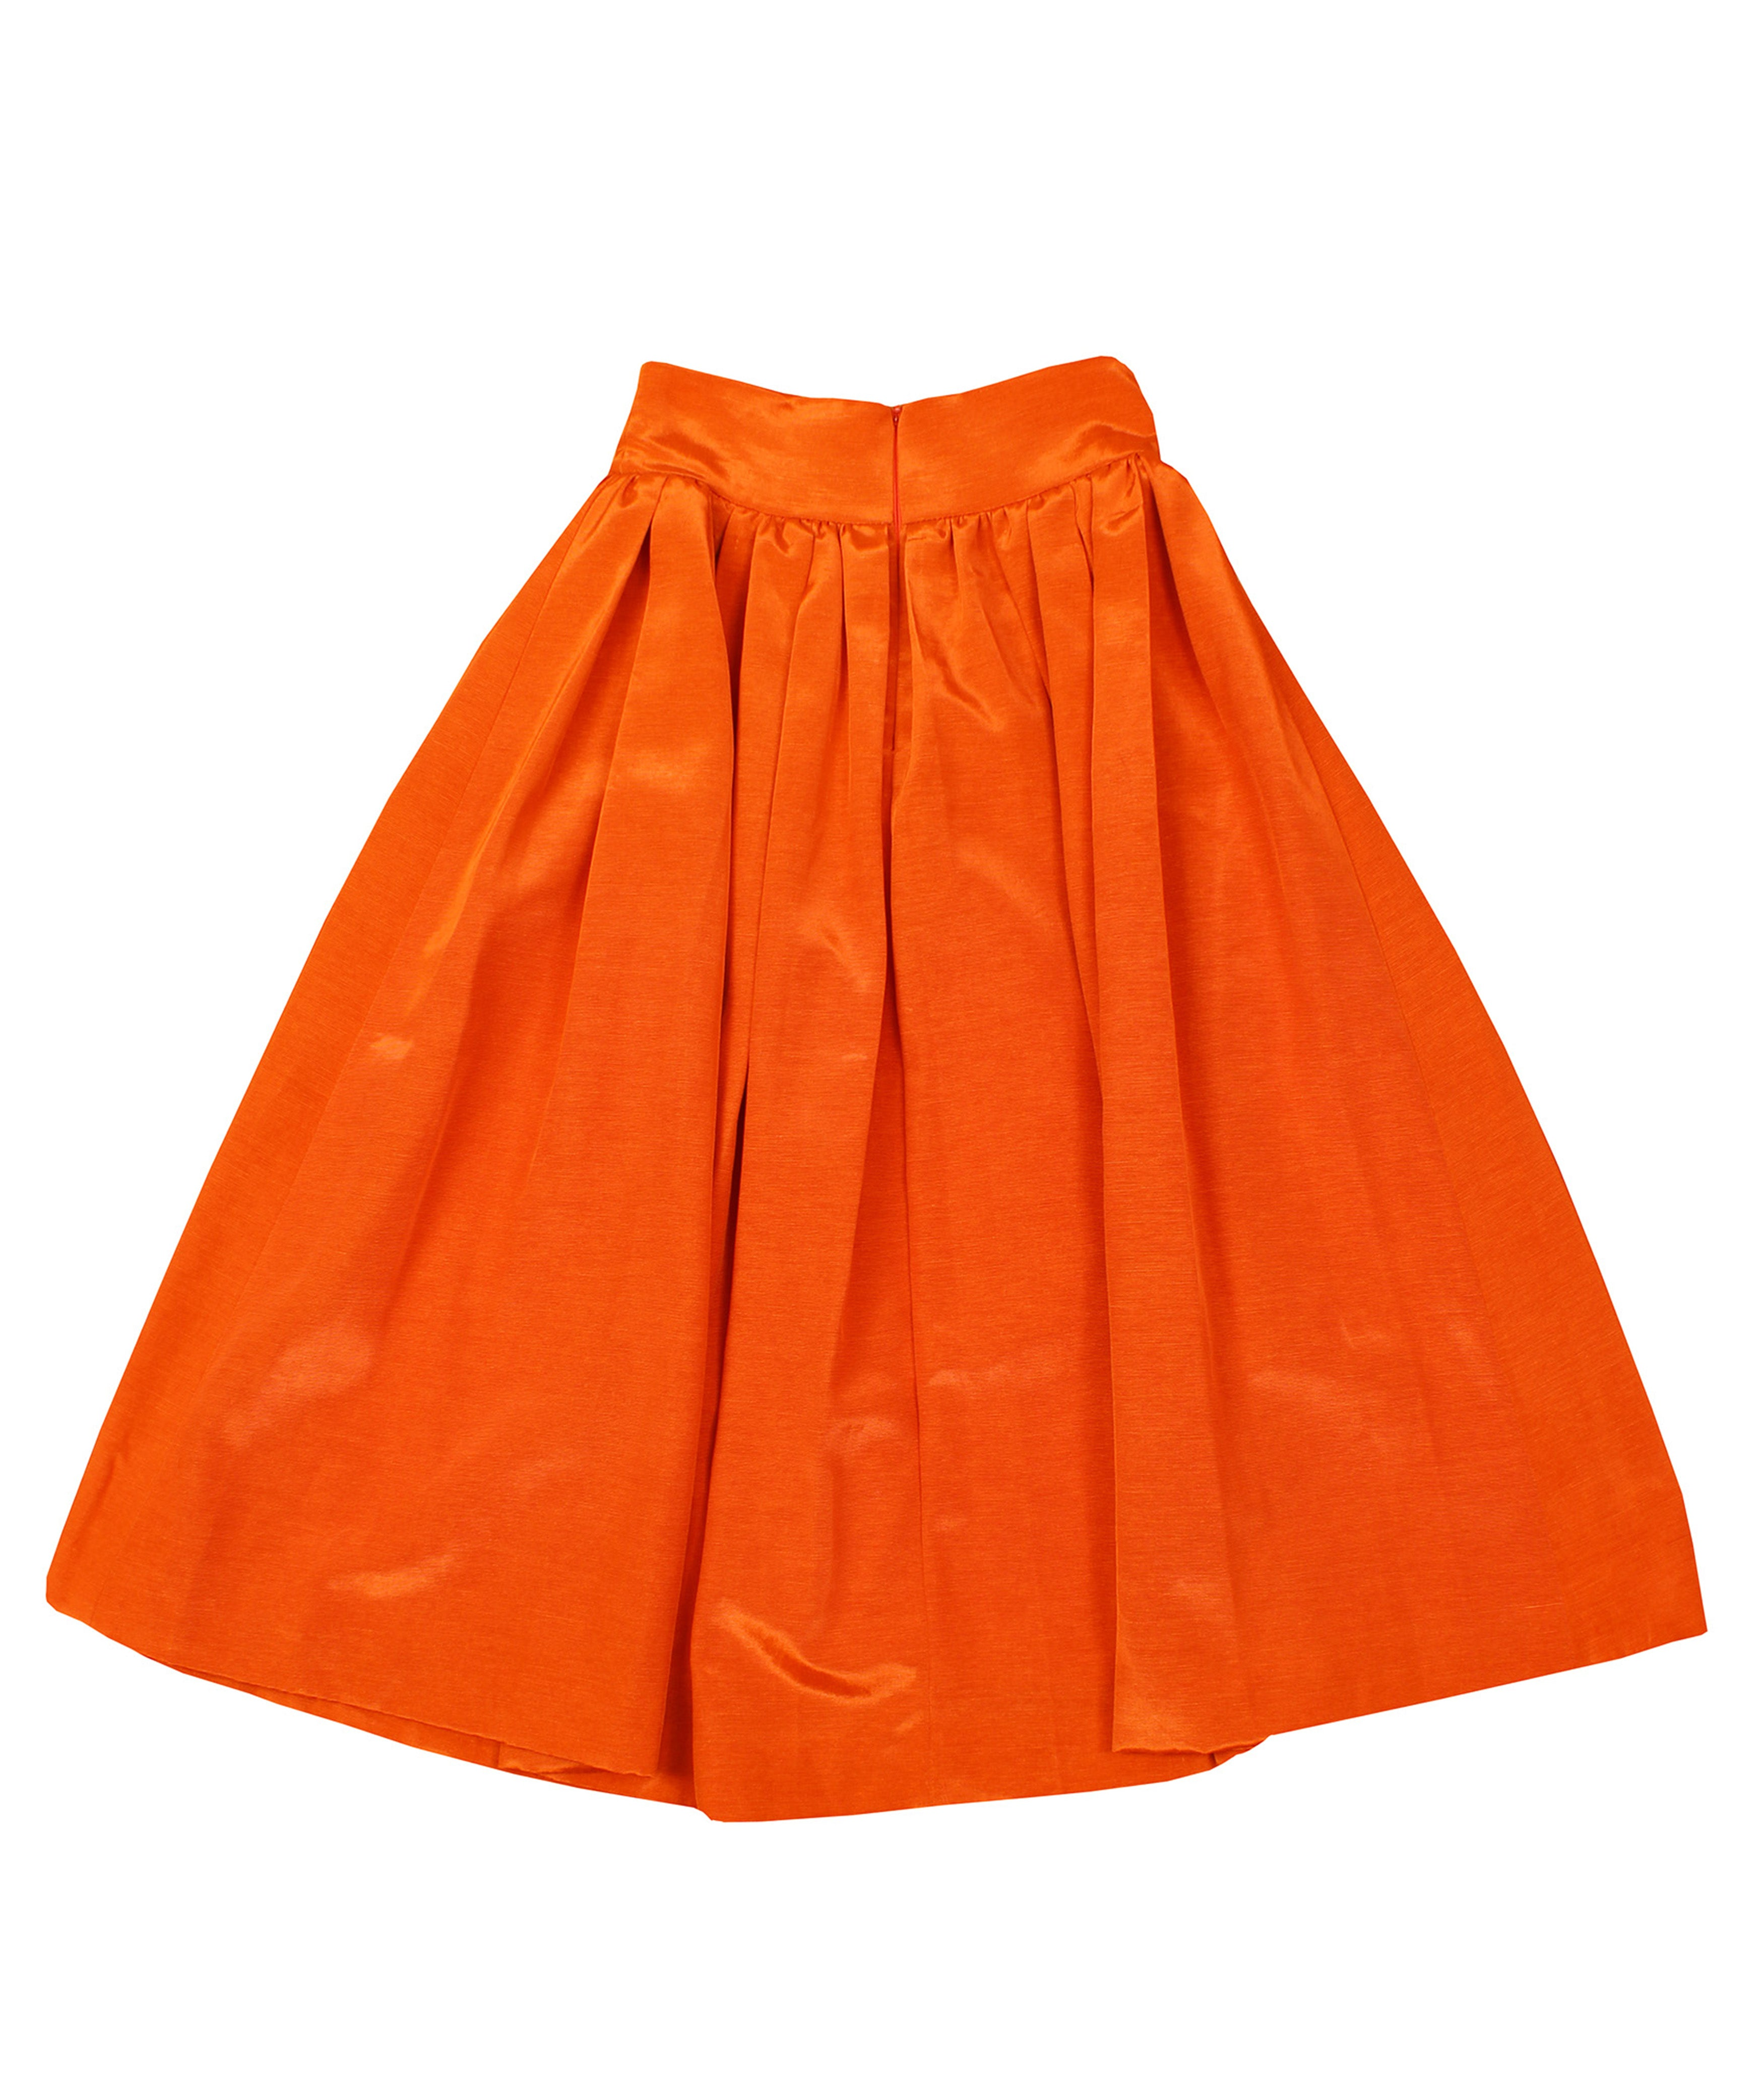 Archie A- Line Skirt